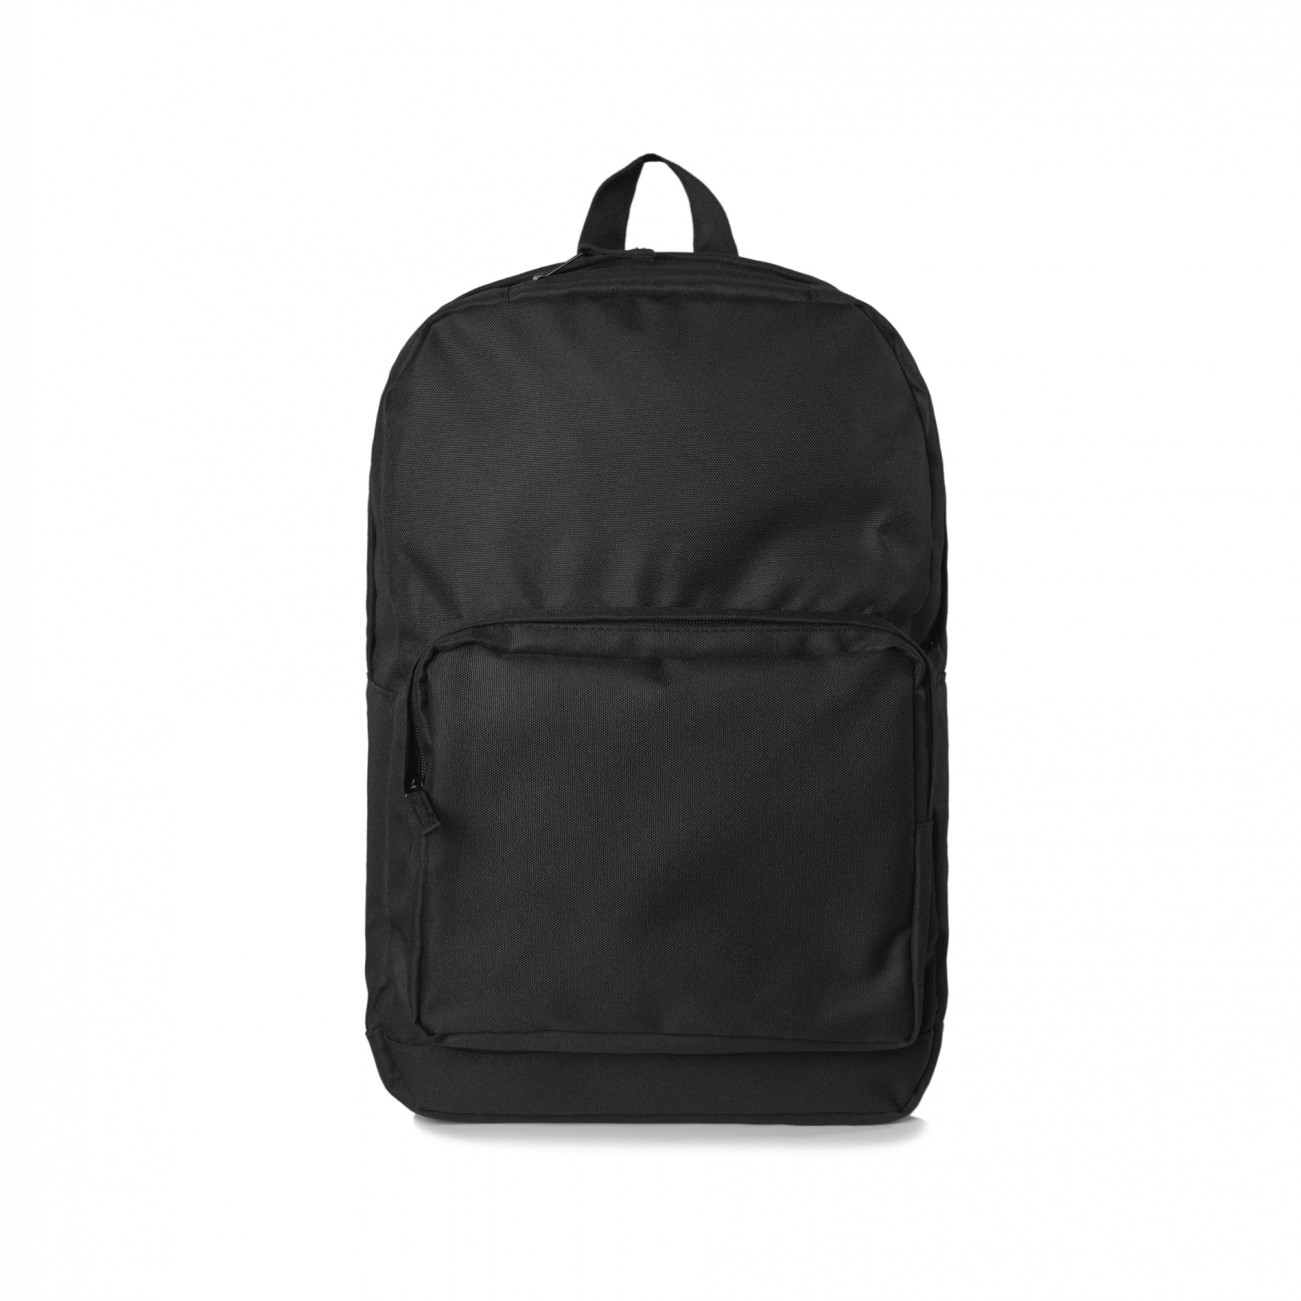 1010_metro_backpack_black_front_1_1.jpg